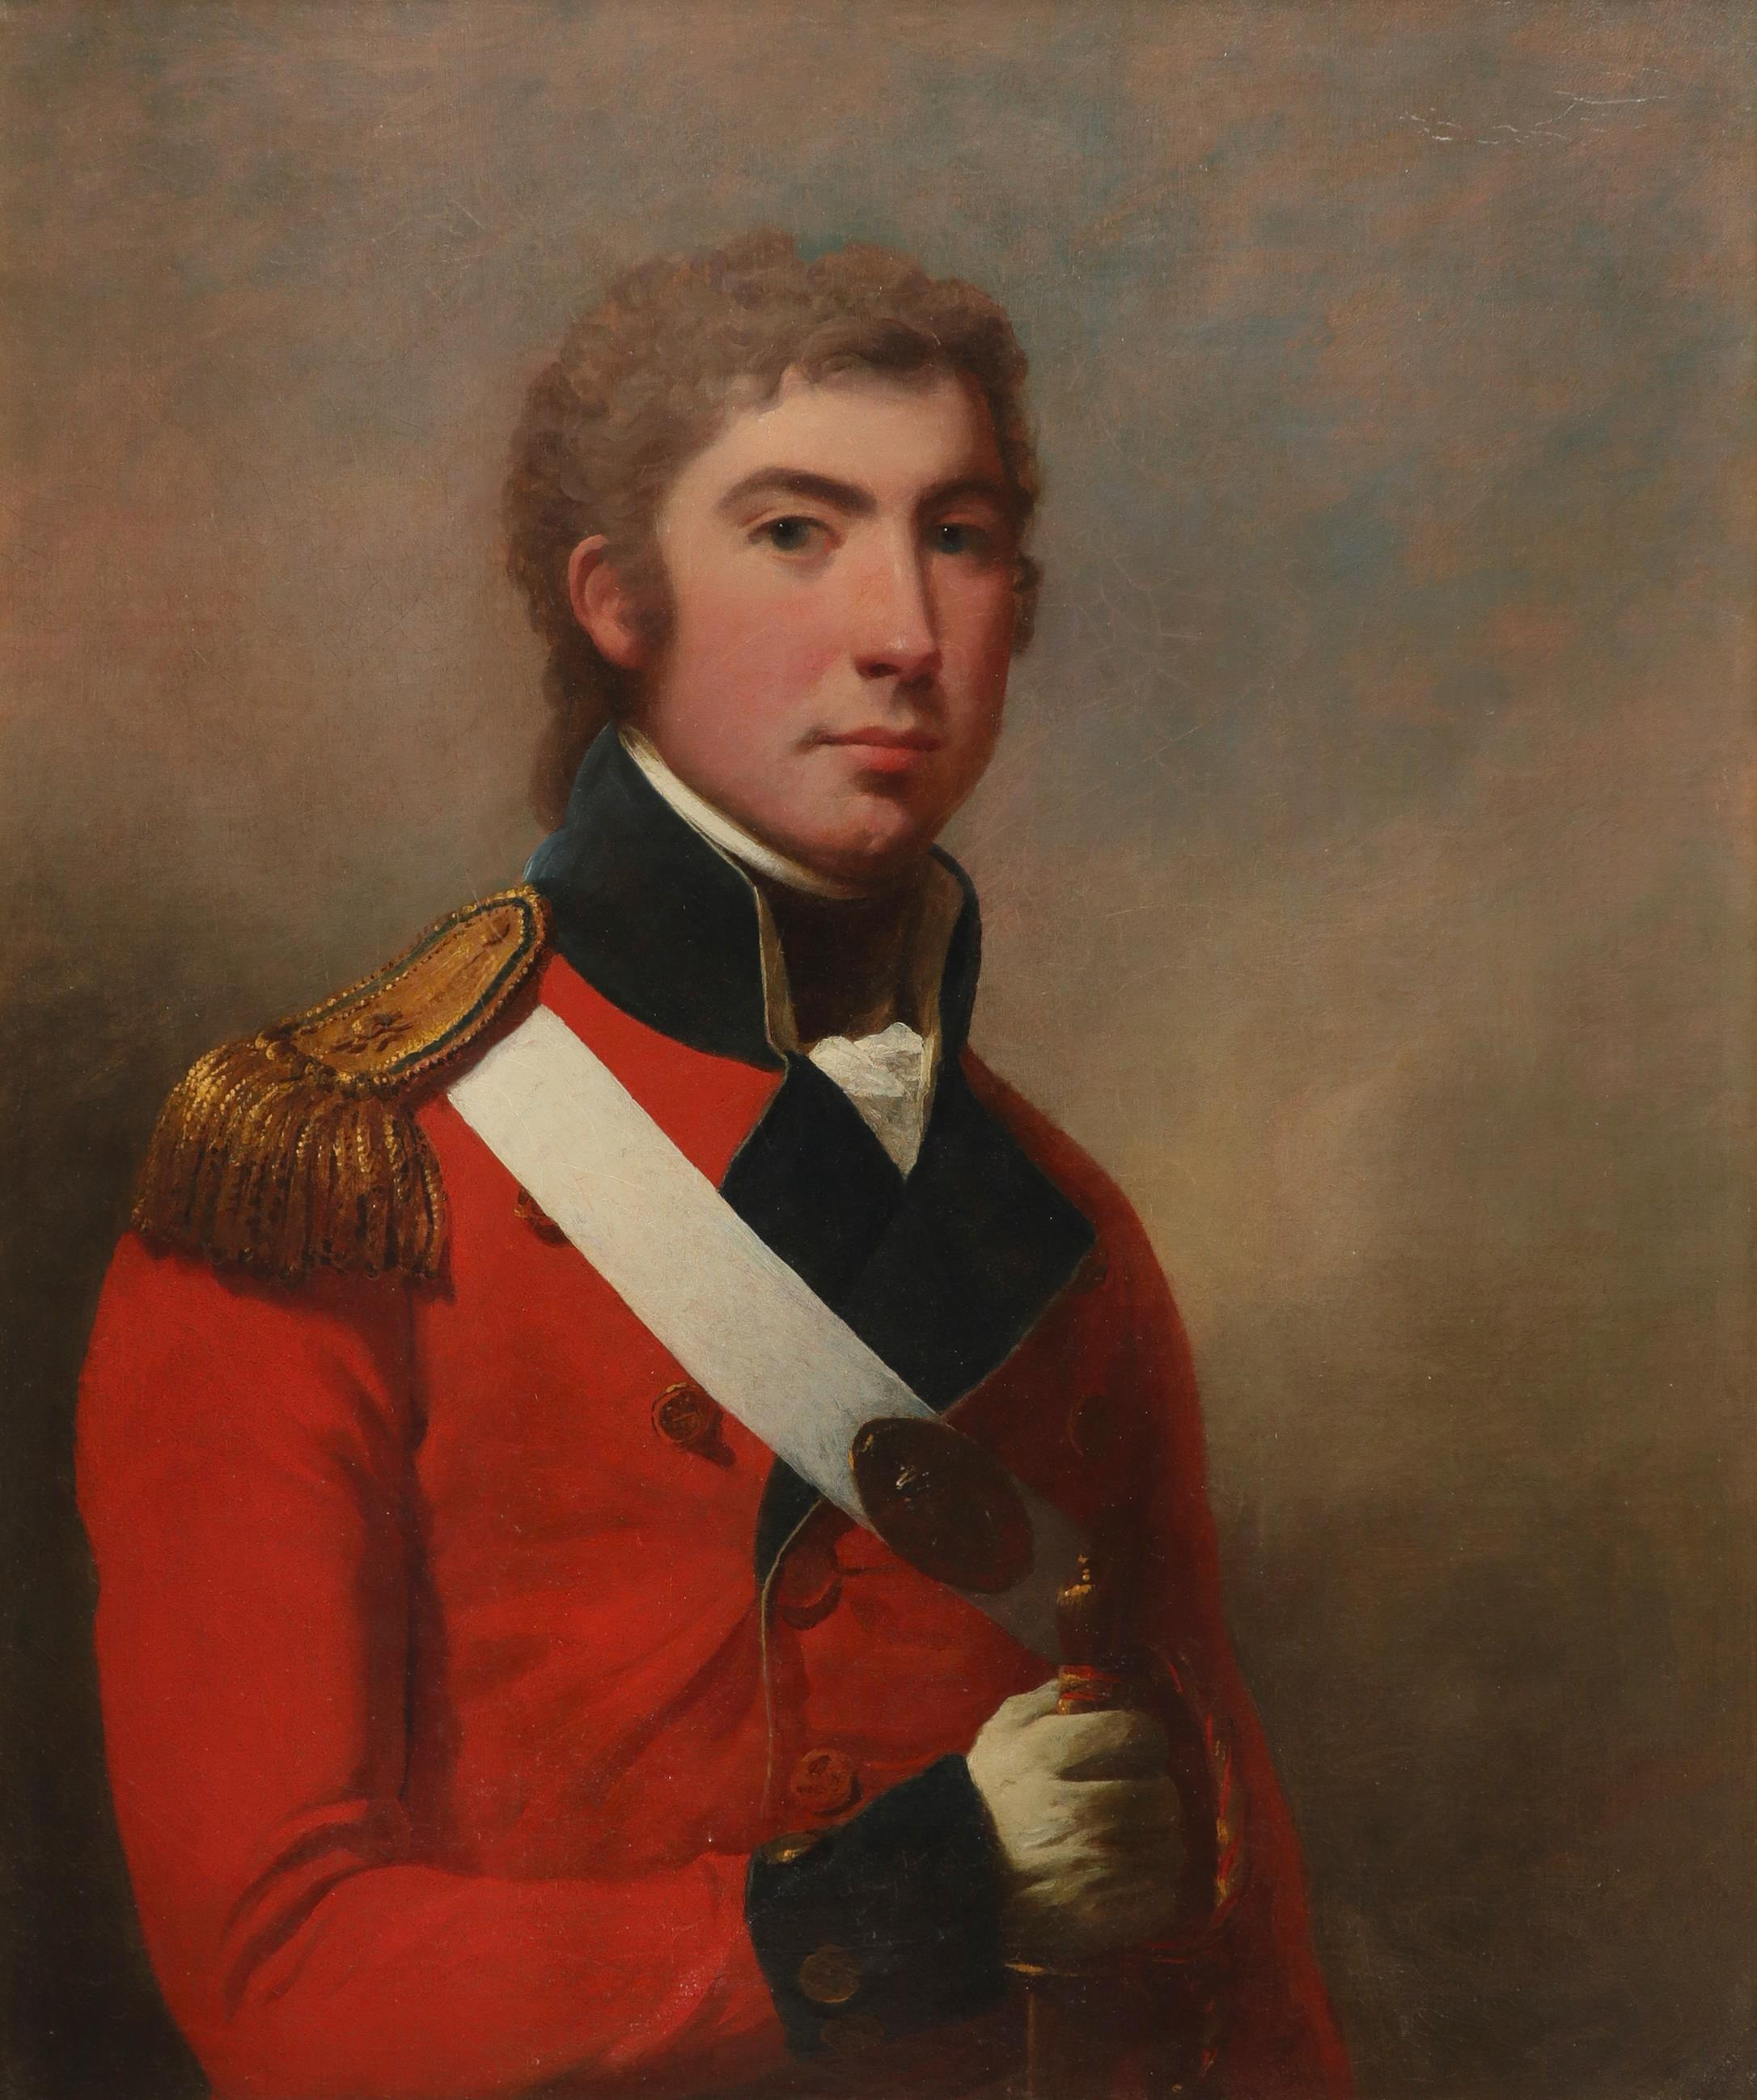 Attributed to Arthur William Devis (1762-1822) Portrait of young officer, half-length, in uniform